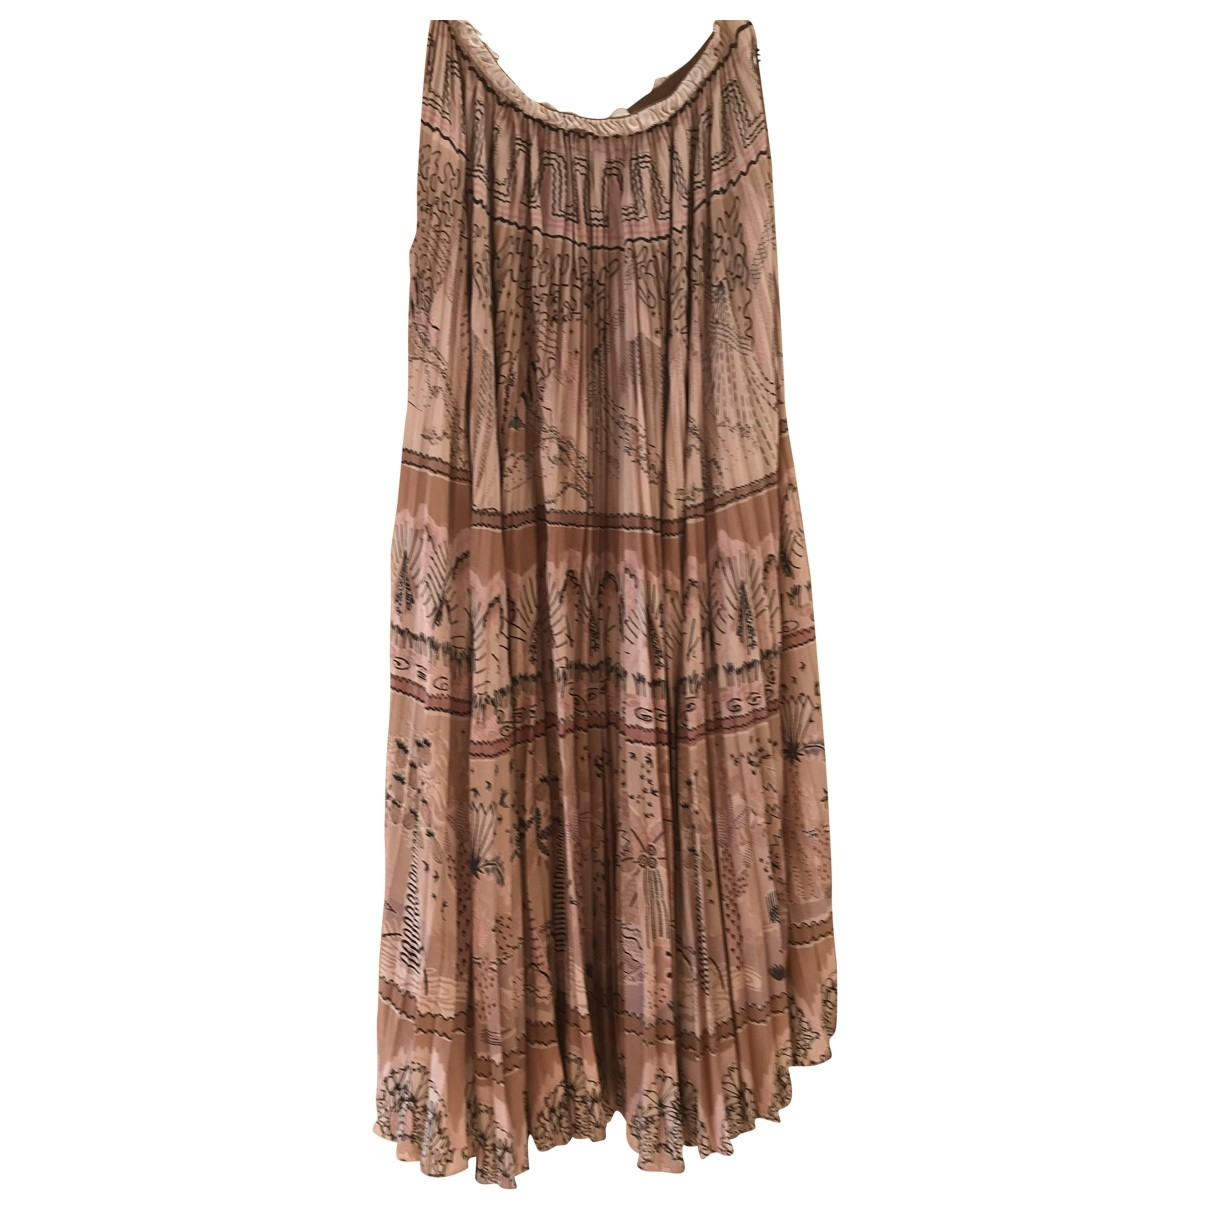 Valentino Garavani \N Silk skirt for Women 38 IT